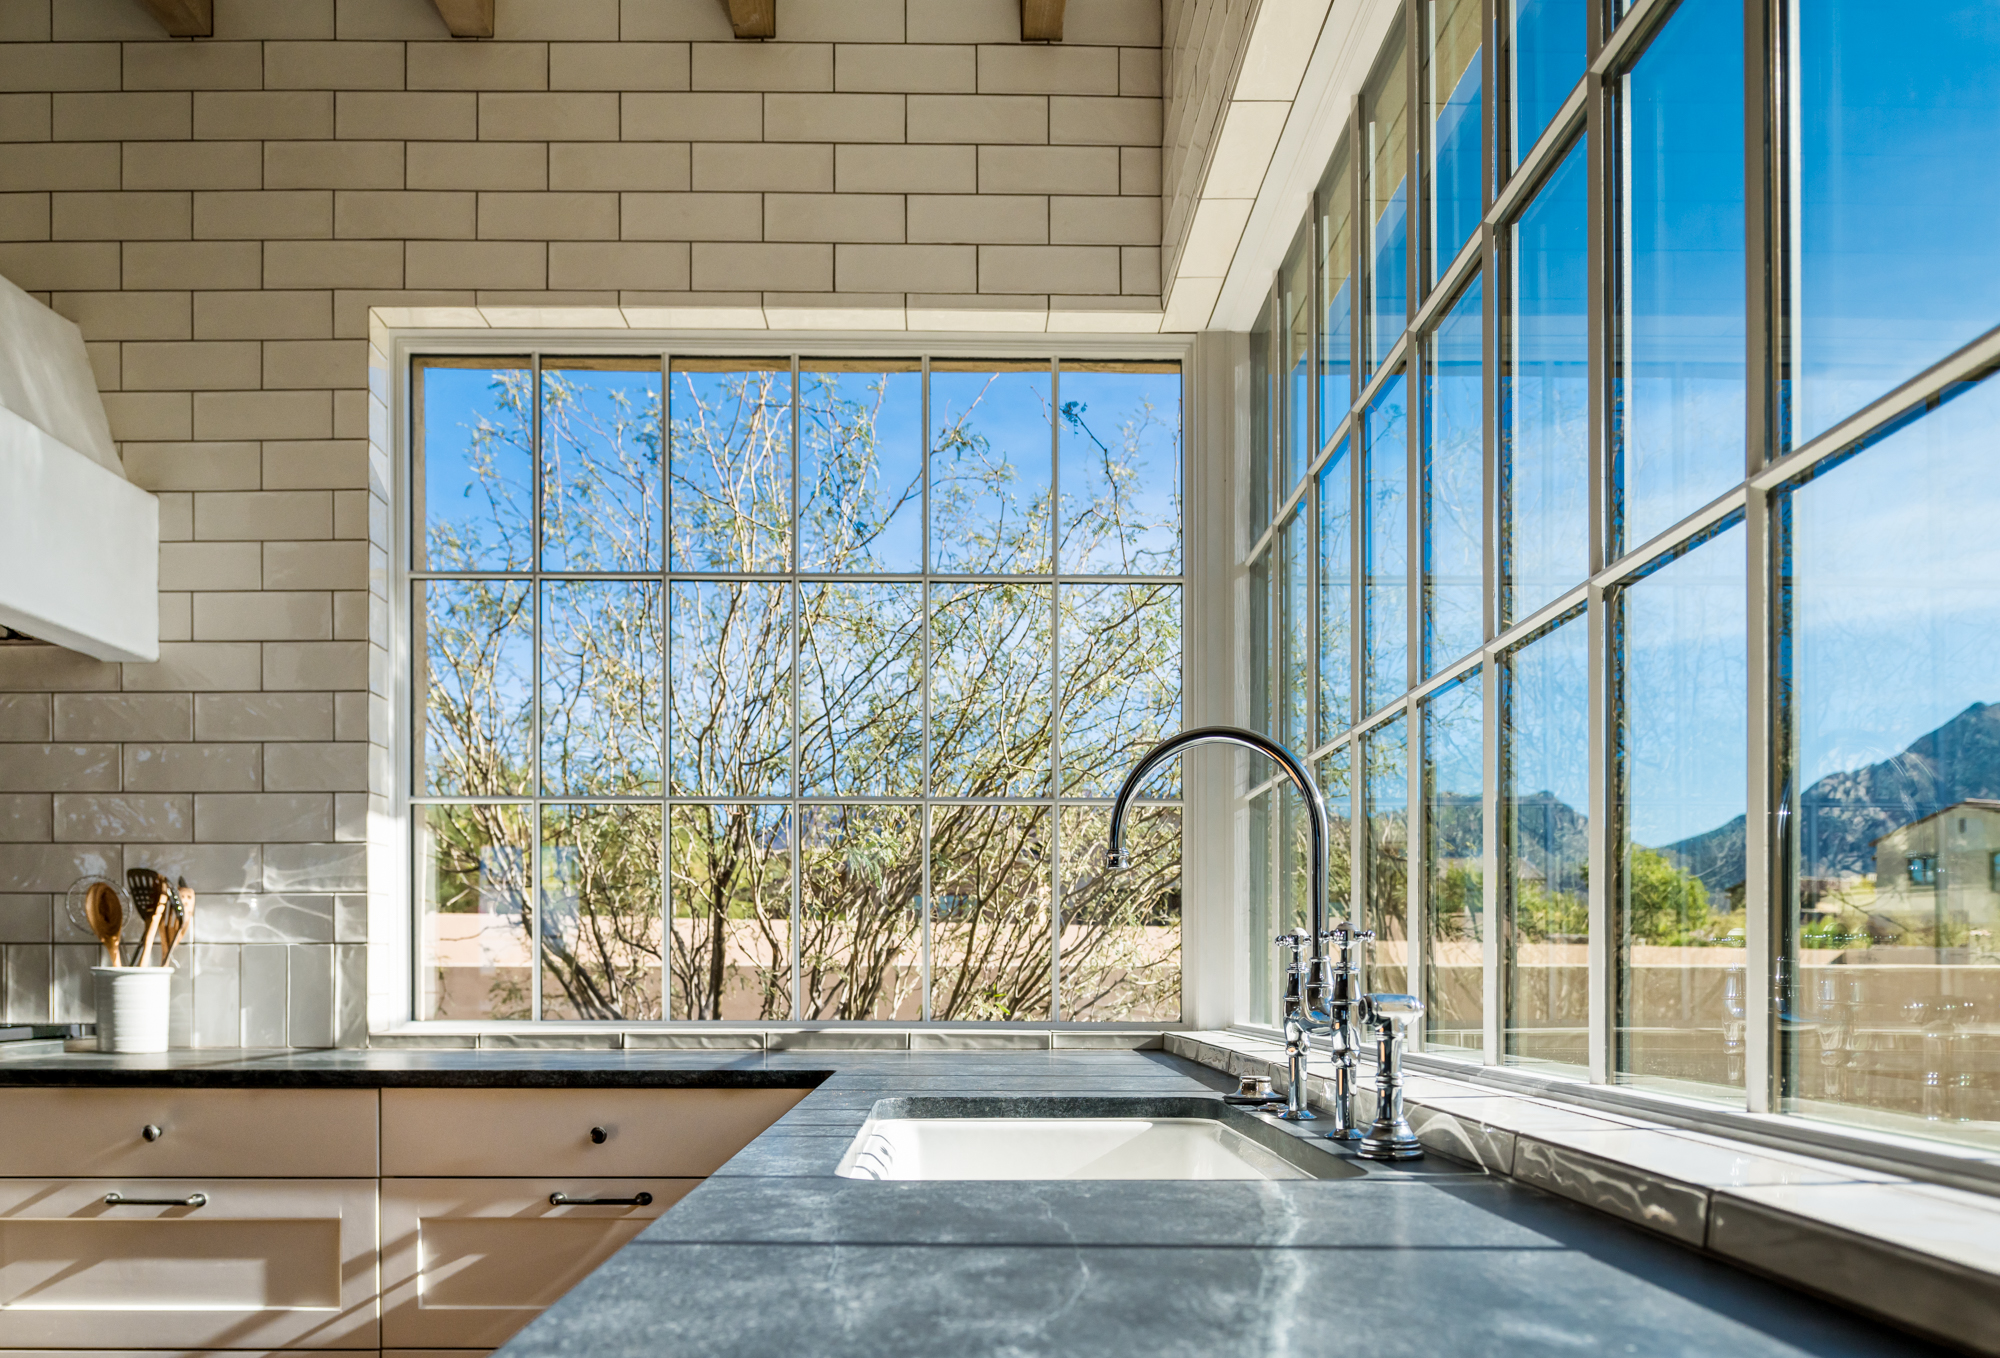 Silverleaf Home_Architecture_An Pham Photography_A852973_PSEdited.jpg